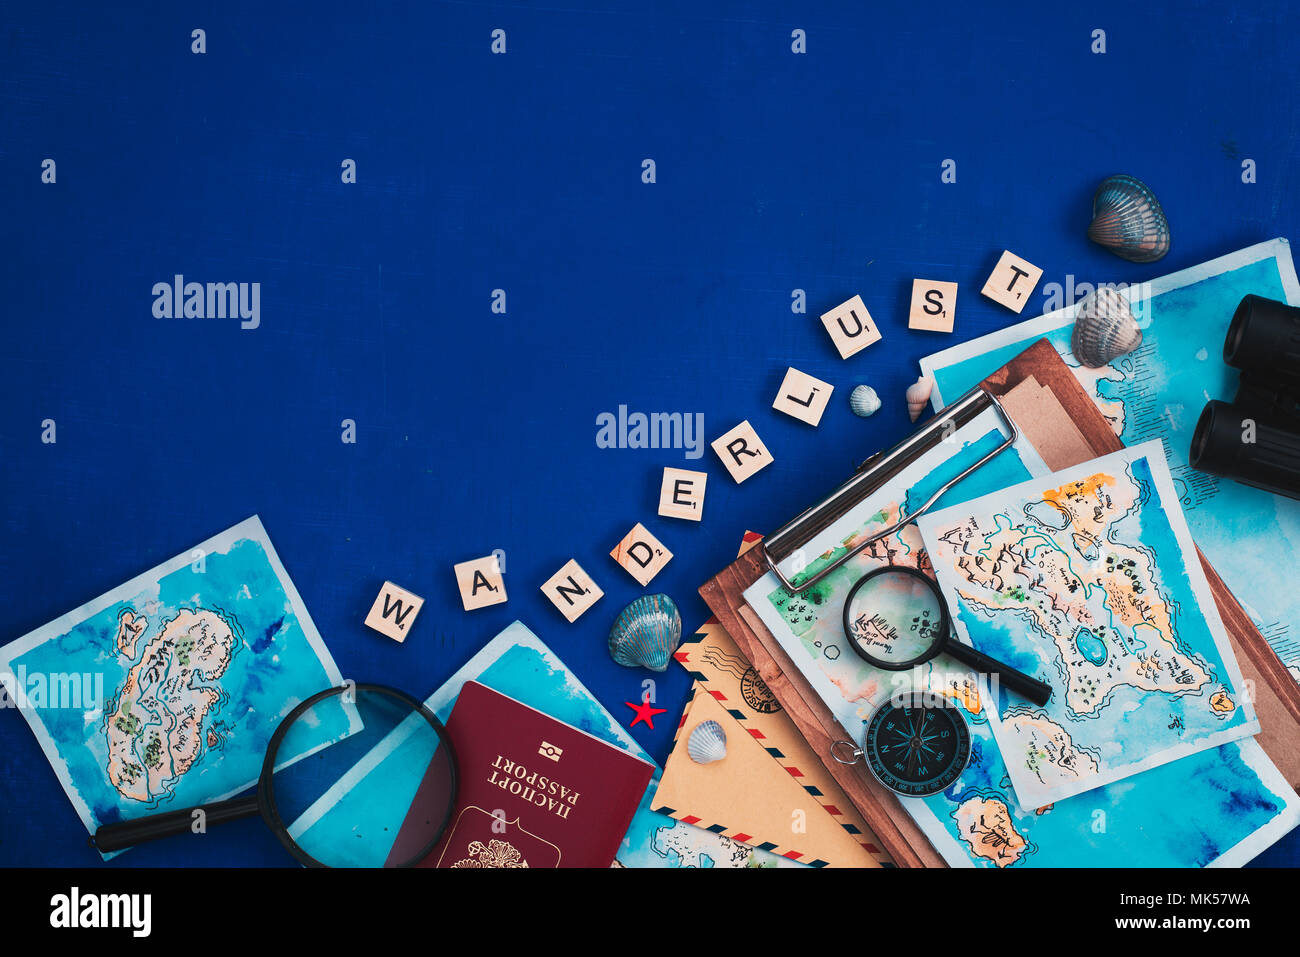 Header with travel and exploration concept. Watercolor maps, passport, compass, binoculars, envelopes, and Wanderlust scrabble letters flat lay on a navy blue background with copy space - Stock Image